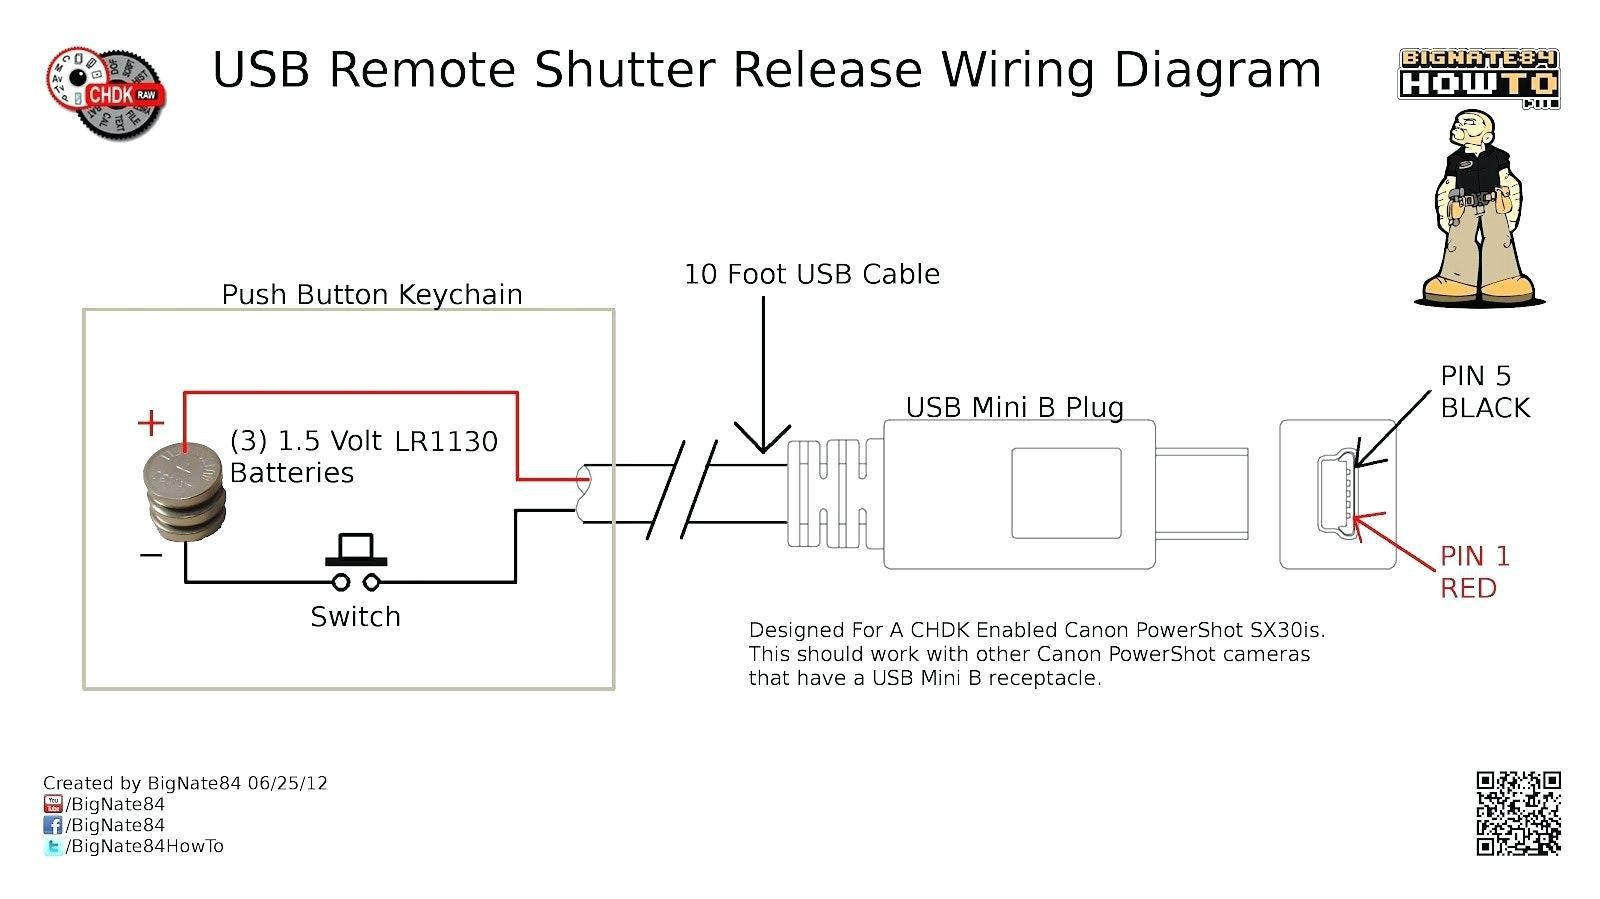 Micro Usb Cable Wiring Diagram To Rs232 | Wiring Library - Mini Usb Wiring Diagram Color Code